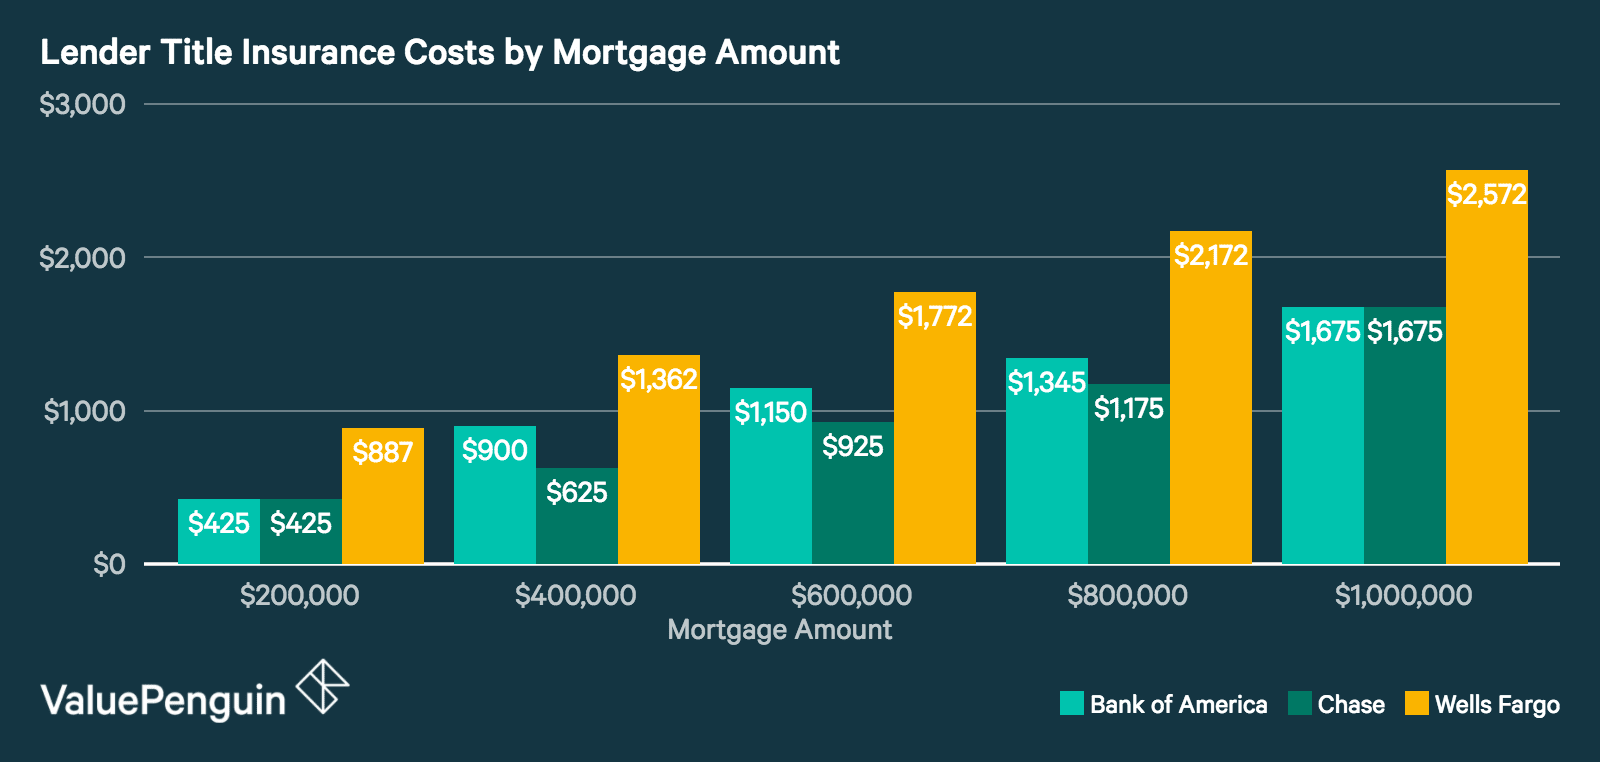 a chart comparing lender's title insurance costs for mortgages at Bank of America, Chase and Wells Fargo